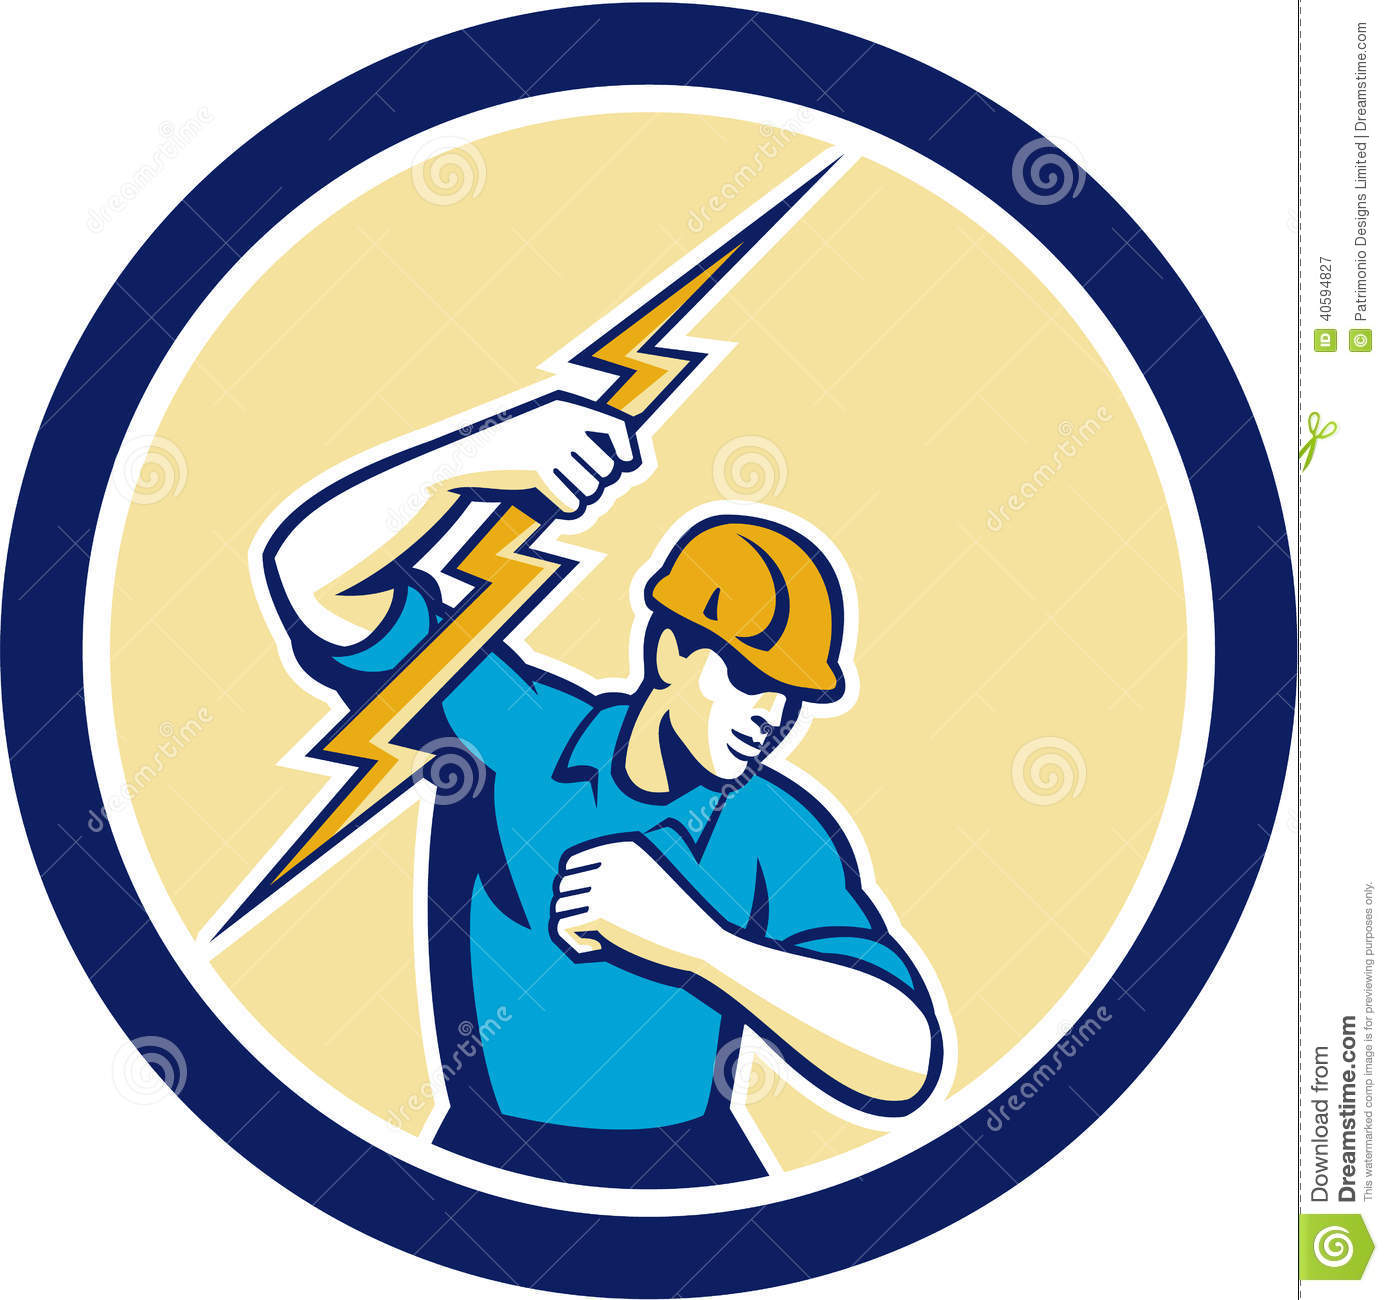 Electrician Holding Lightning Bolt Side Circle Stock Vector.